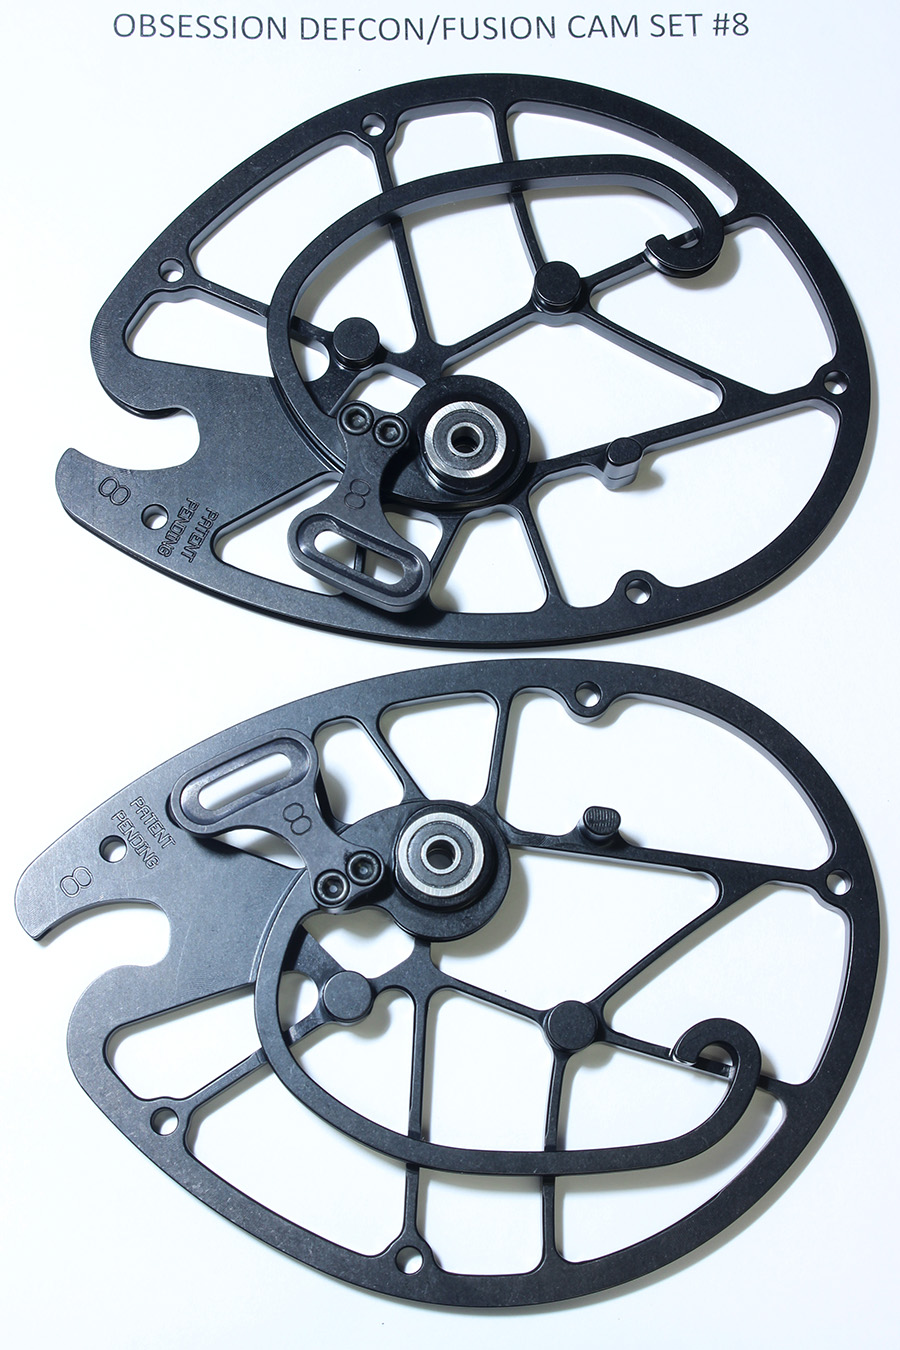 OEM Obsession Archery Defcon/Fusion 2-PC Cam Set, Size #8 (Top & Bottom) photo 2